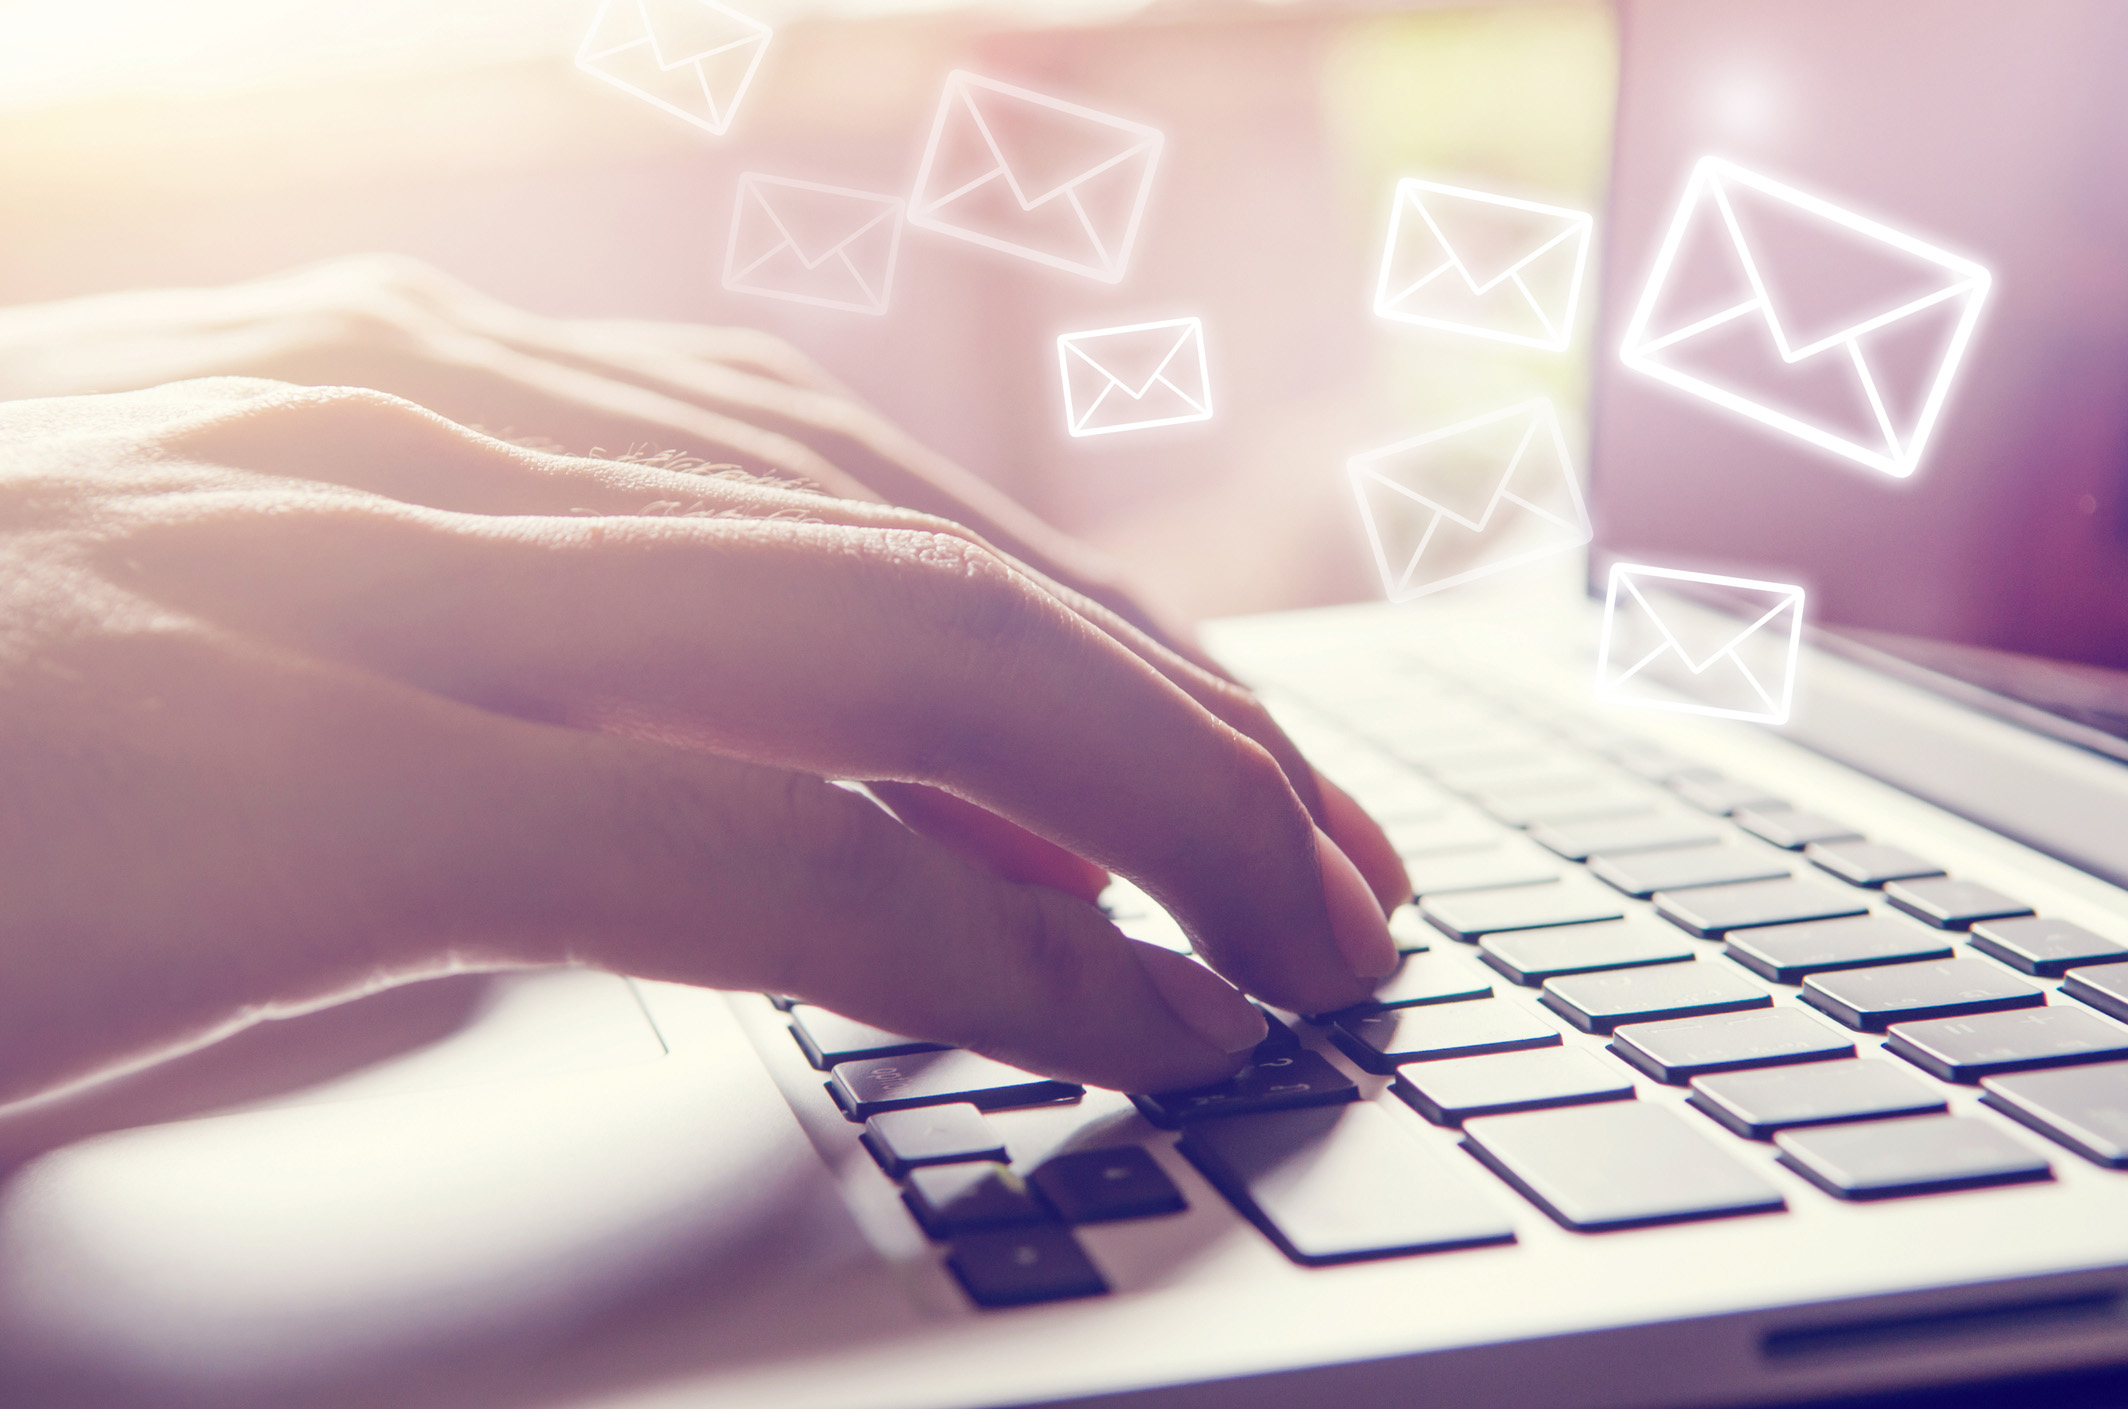 Don't allow email burnout to push your buttons